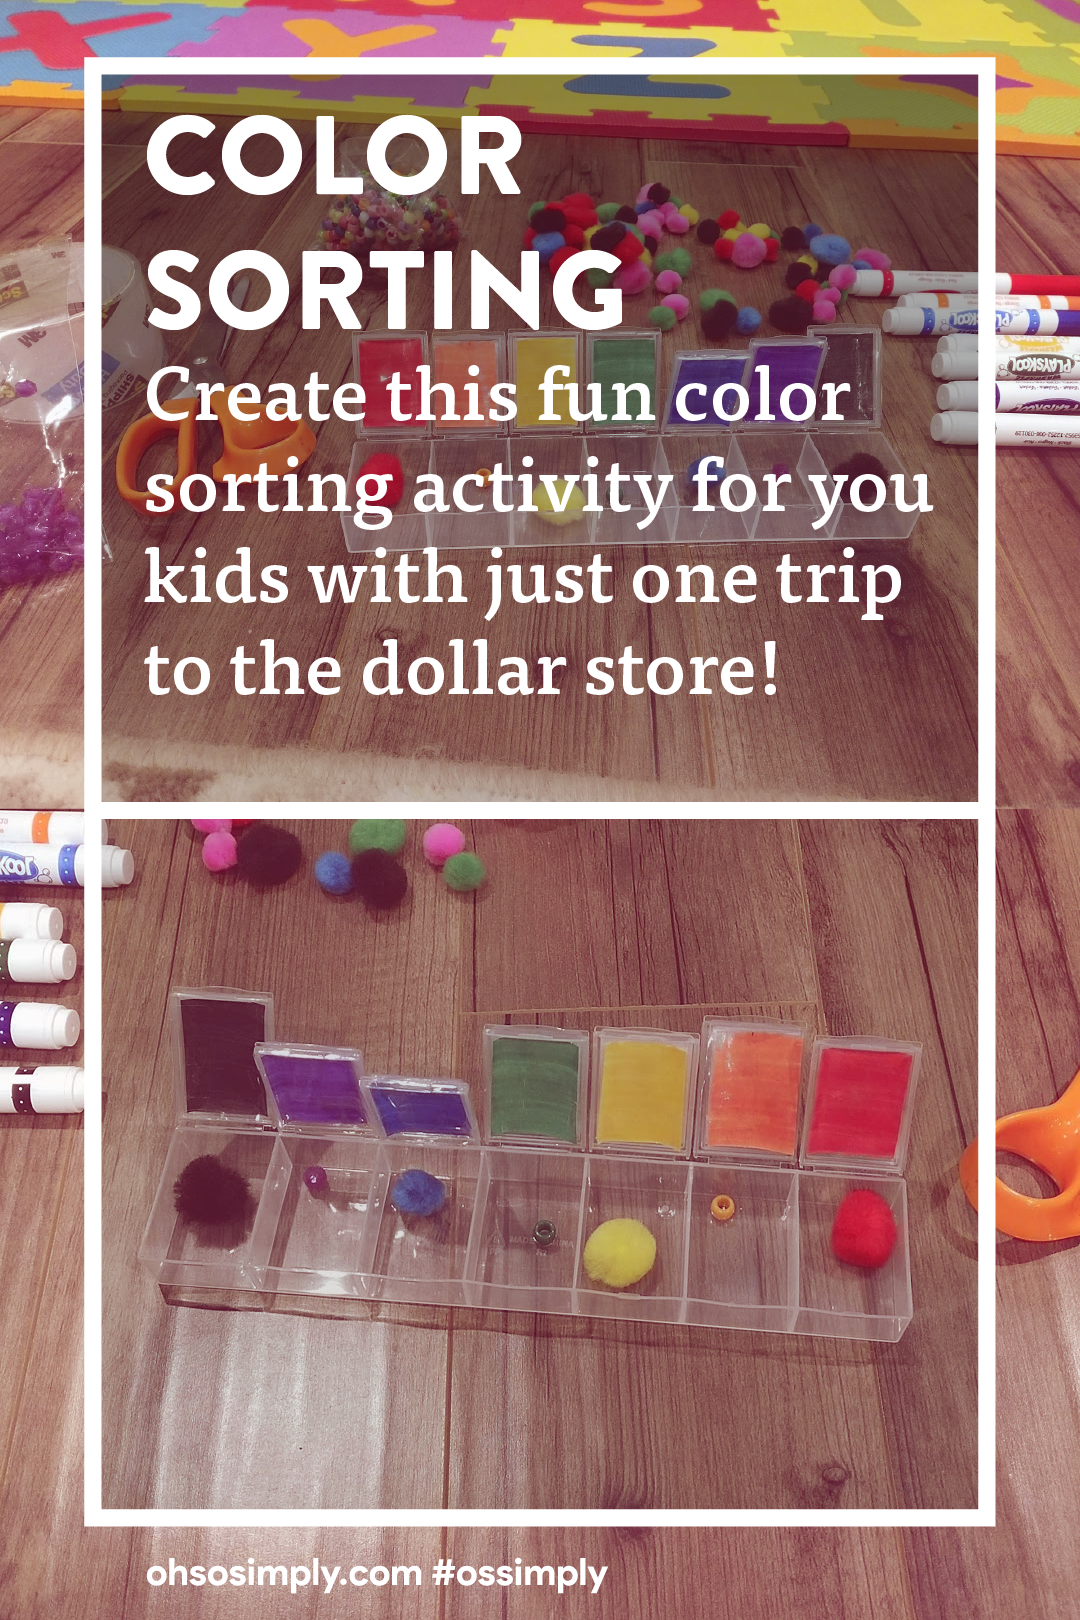 Color sorting. Create this fun color sorting activity for your kids with just one trip to the dollar store!